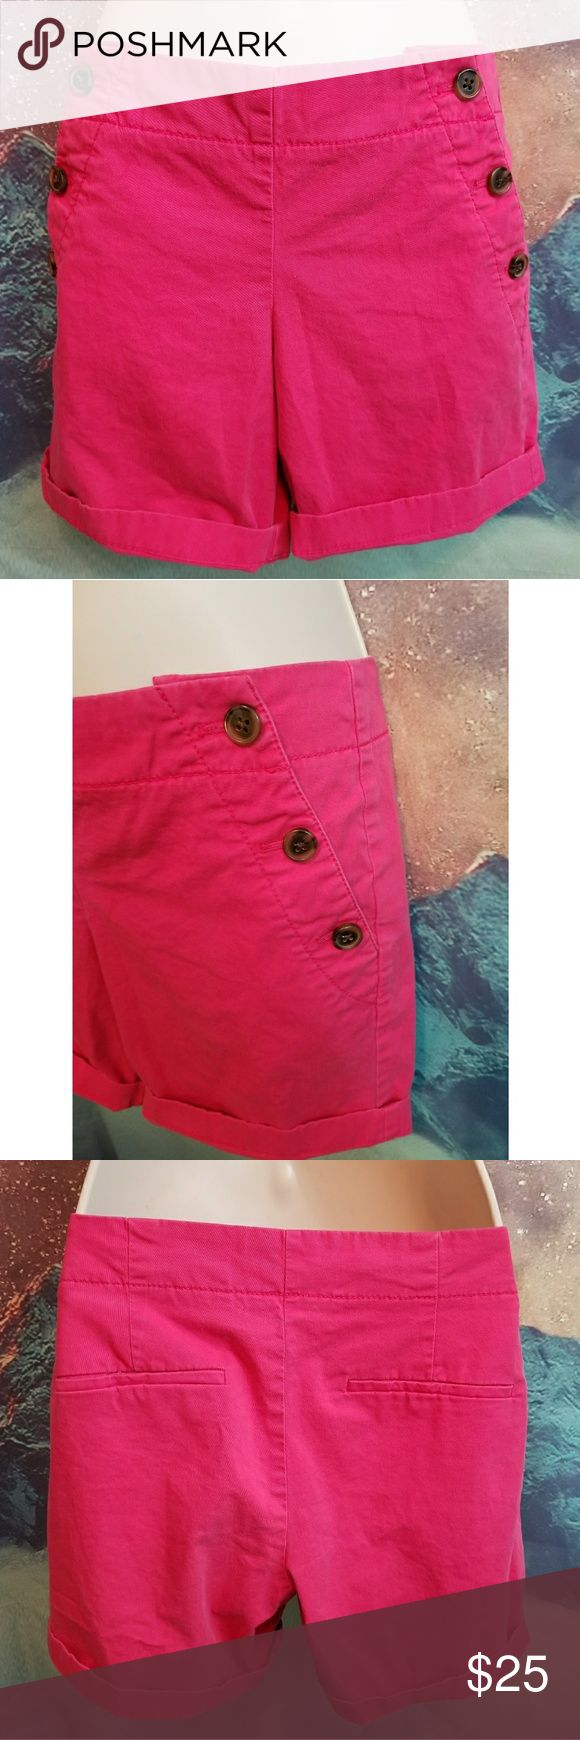 J. Crew Hot Pink Chino Shorts Size 2 Hot Pink Shorts Excellent Condition J. Crew Shorts